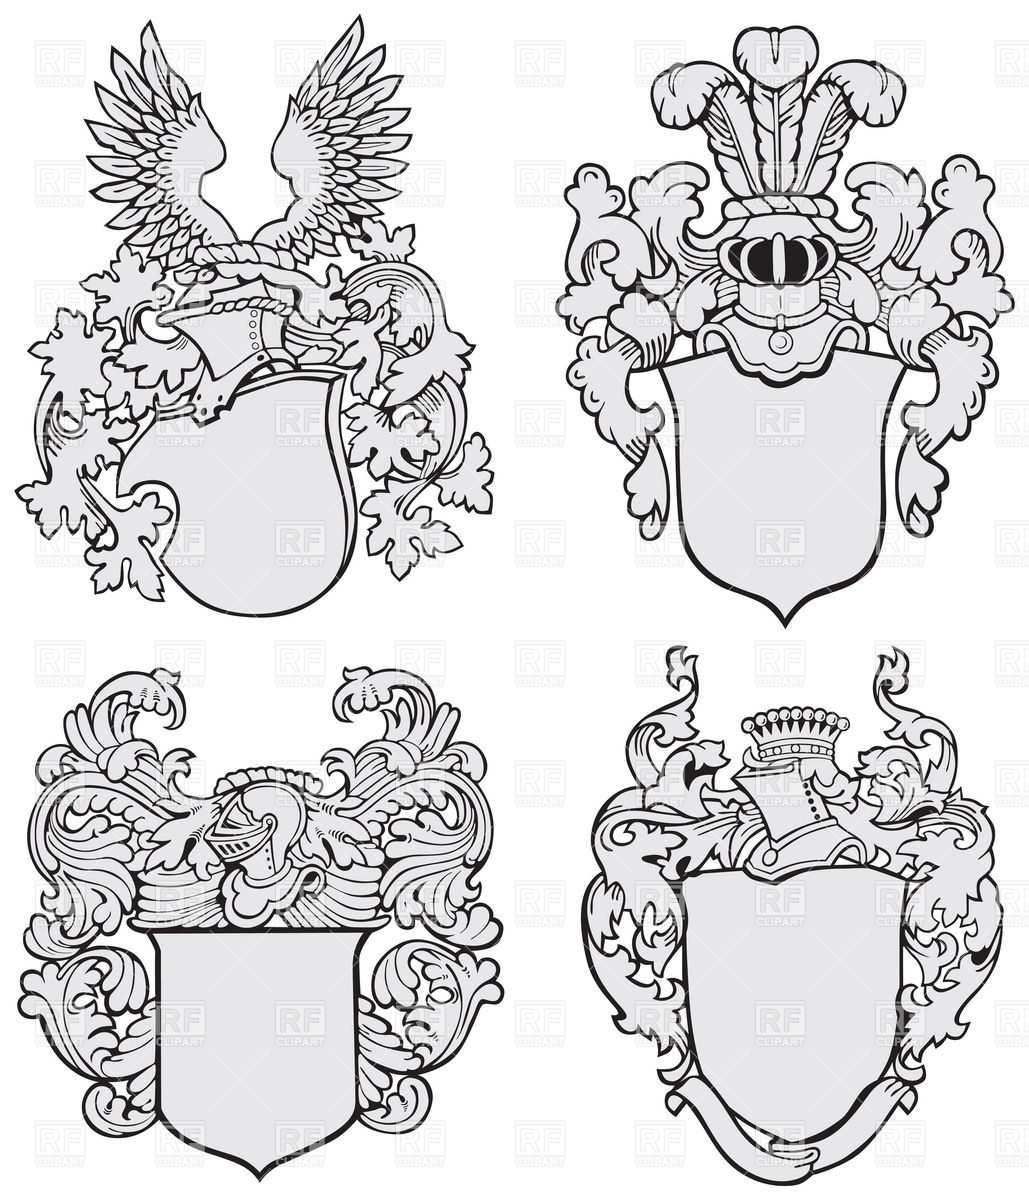 1029x1200 Knightly Royal Coats Of Arms